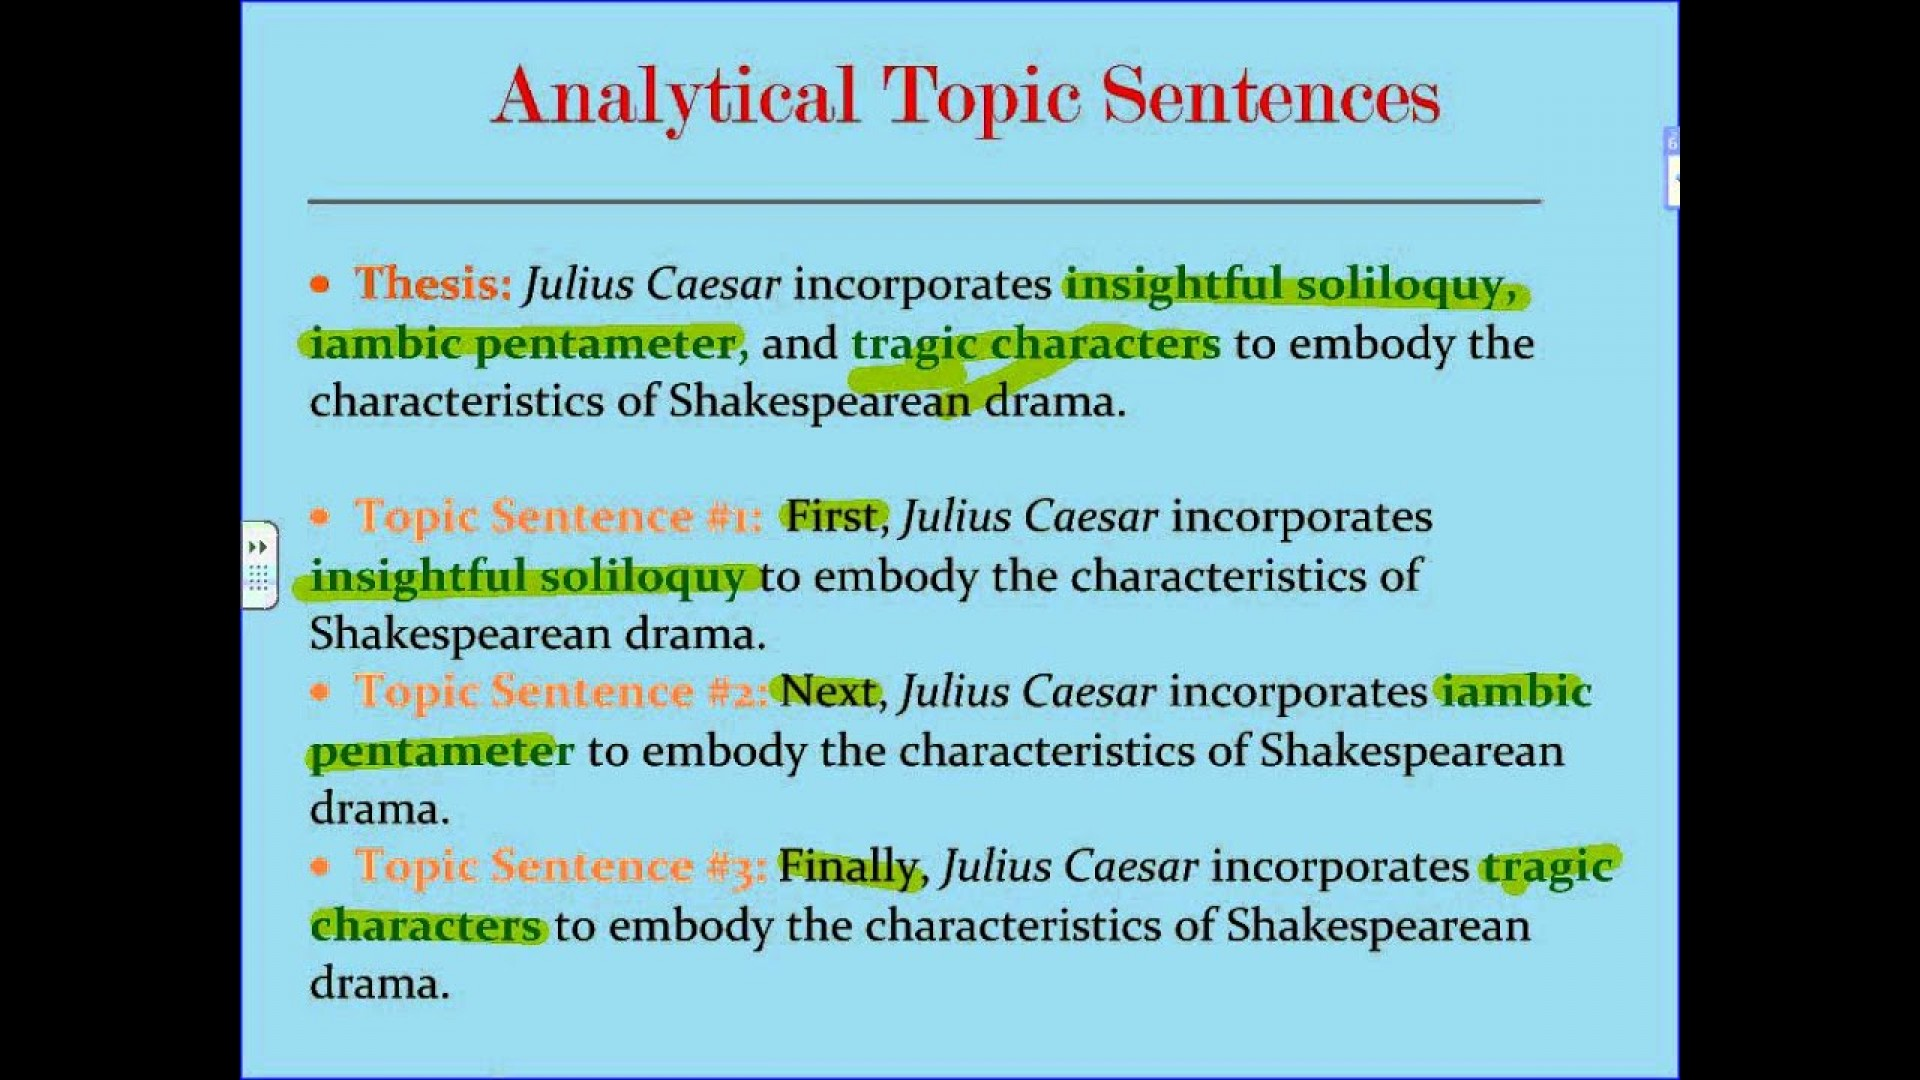 024 Maxresdefault How Many Sentences Are In Essay Best A Much Make Paragraph An 250 Word 1920